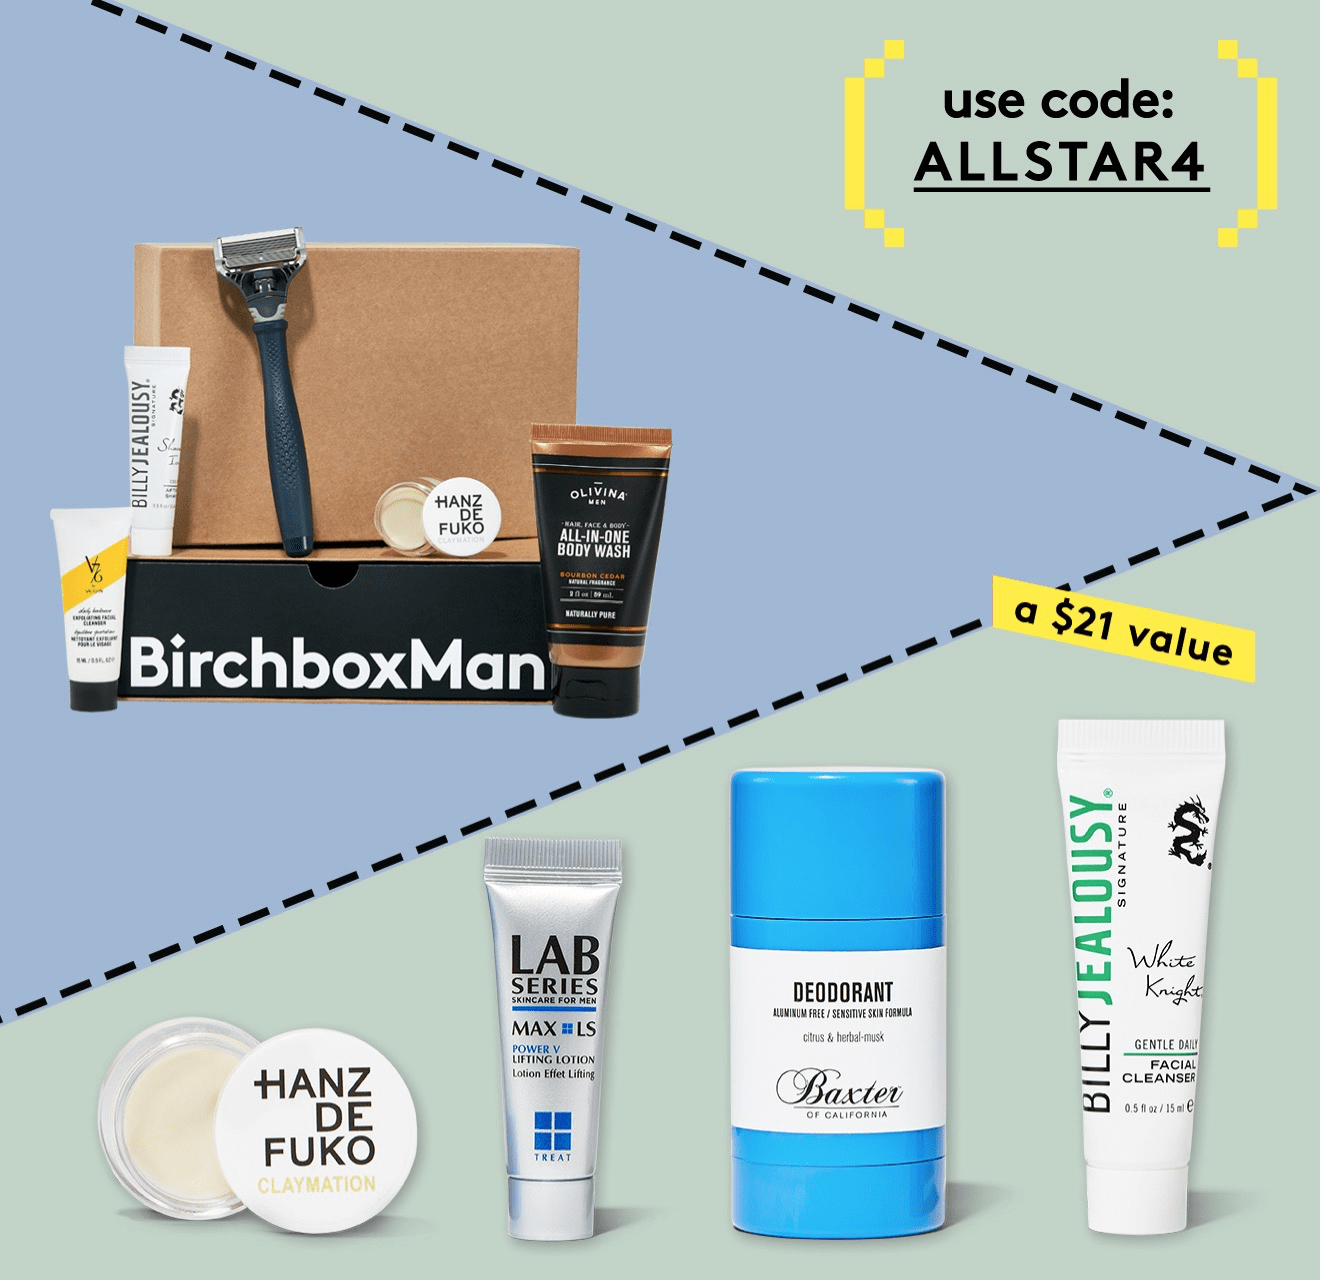 Birchbox Man Coupon: Free Allstar Kit with Subscription!